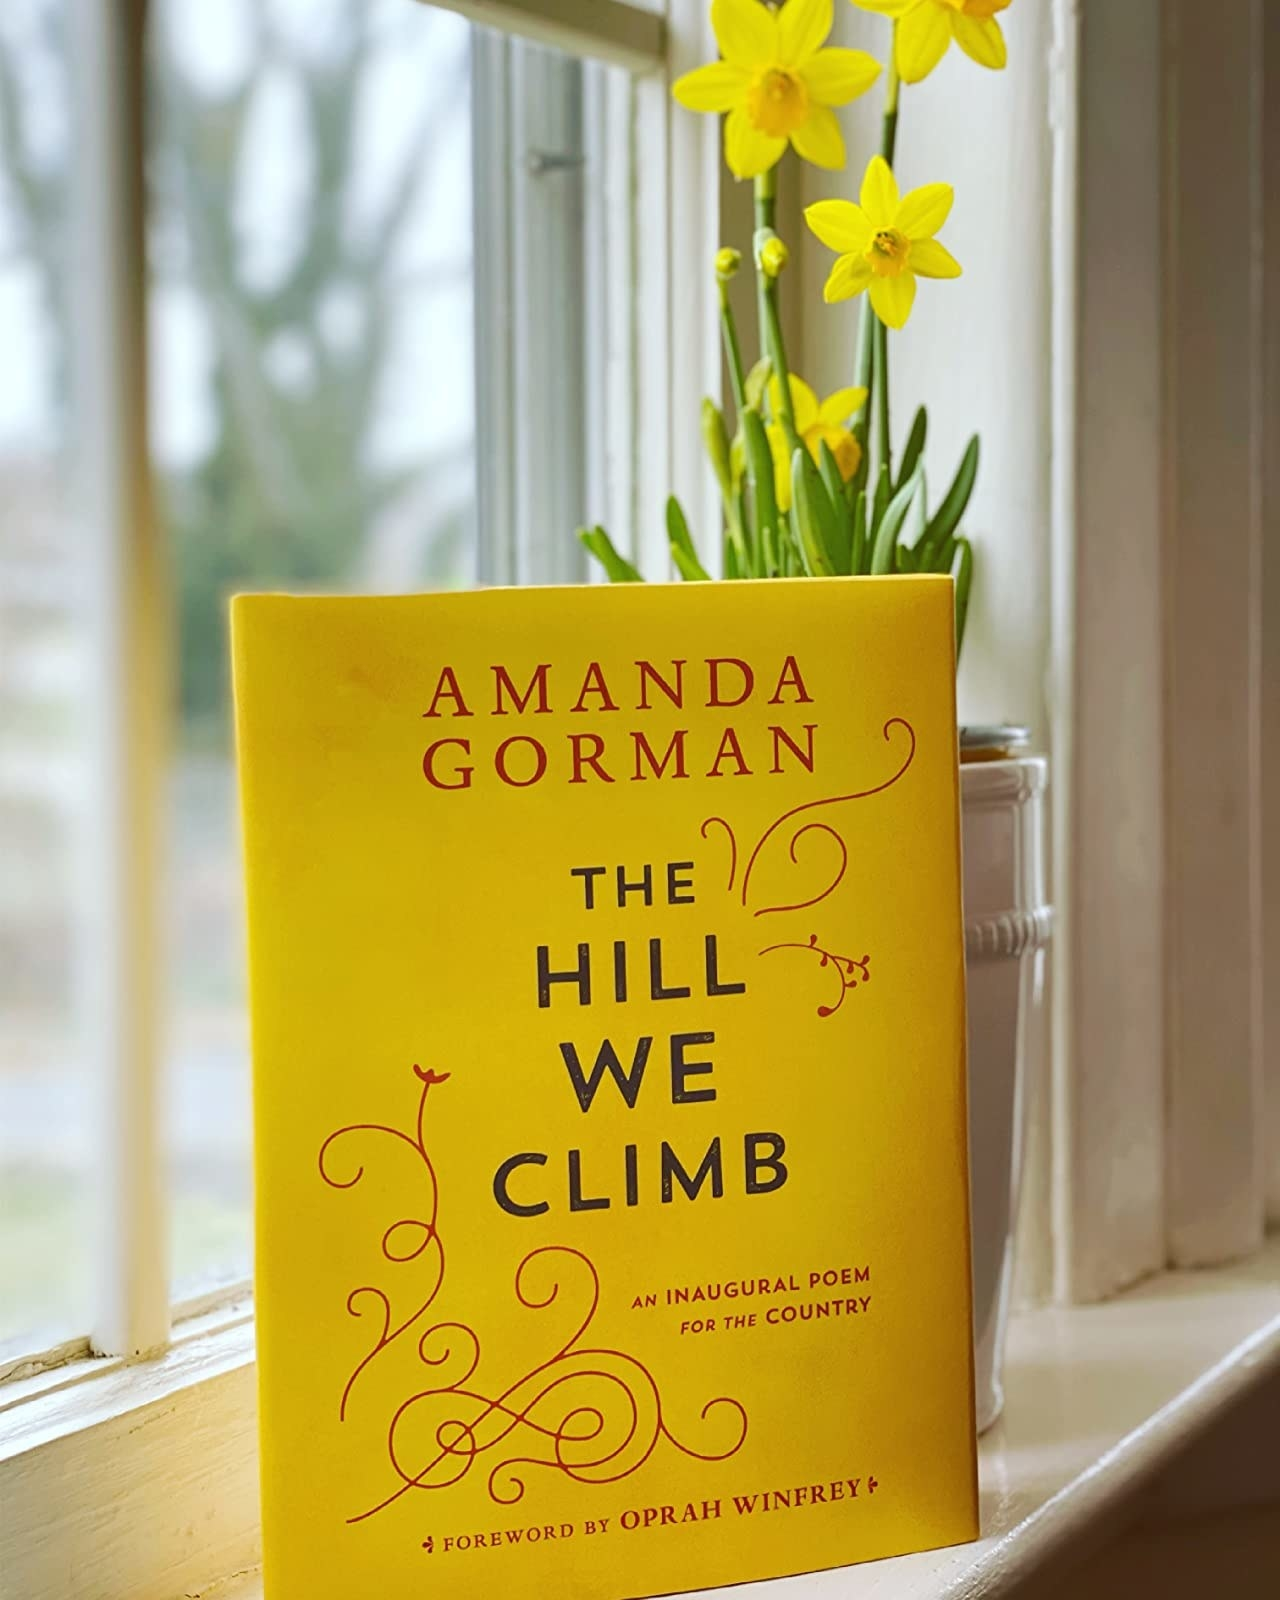 The book, which has a bright yellow cover with red design flourishes